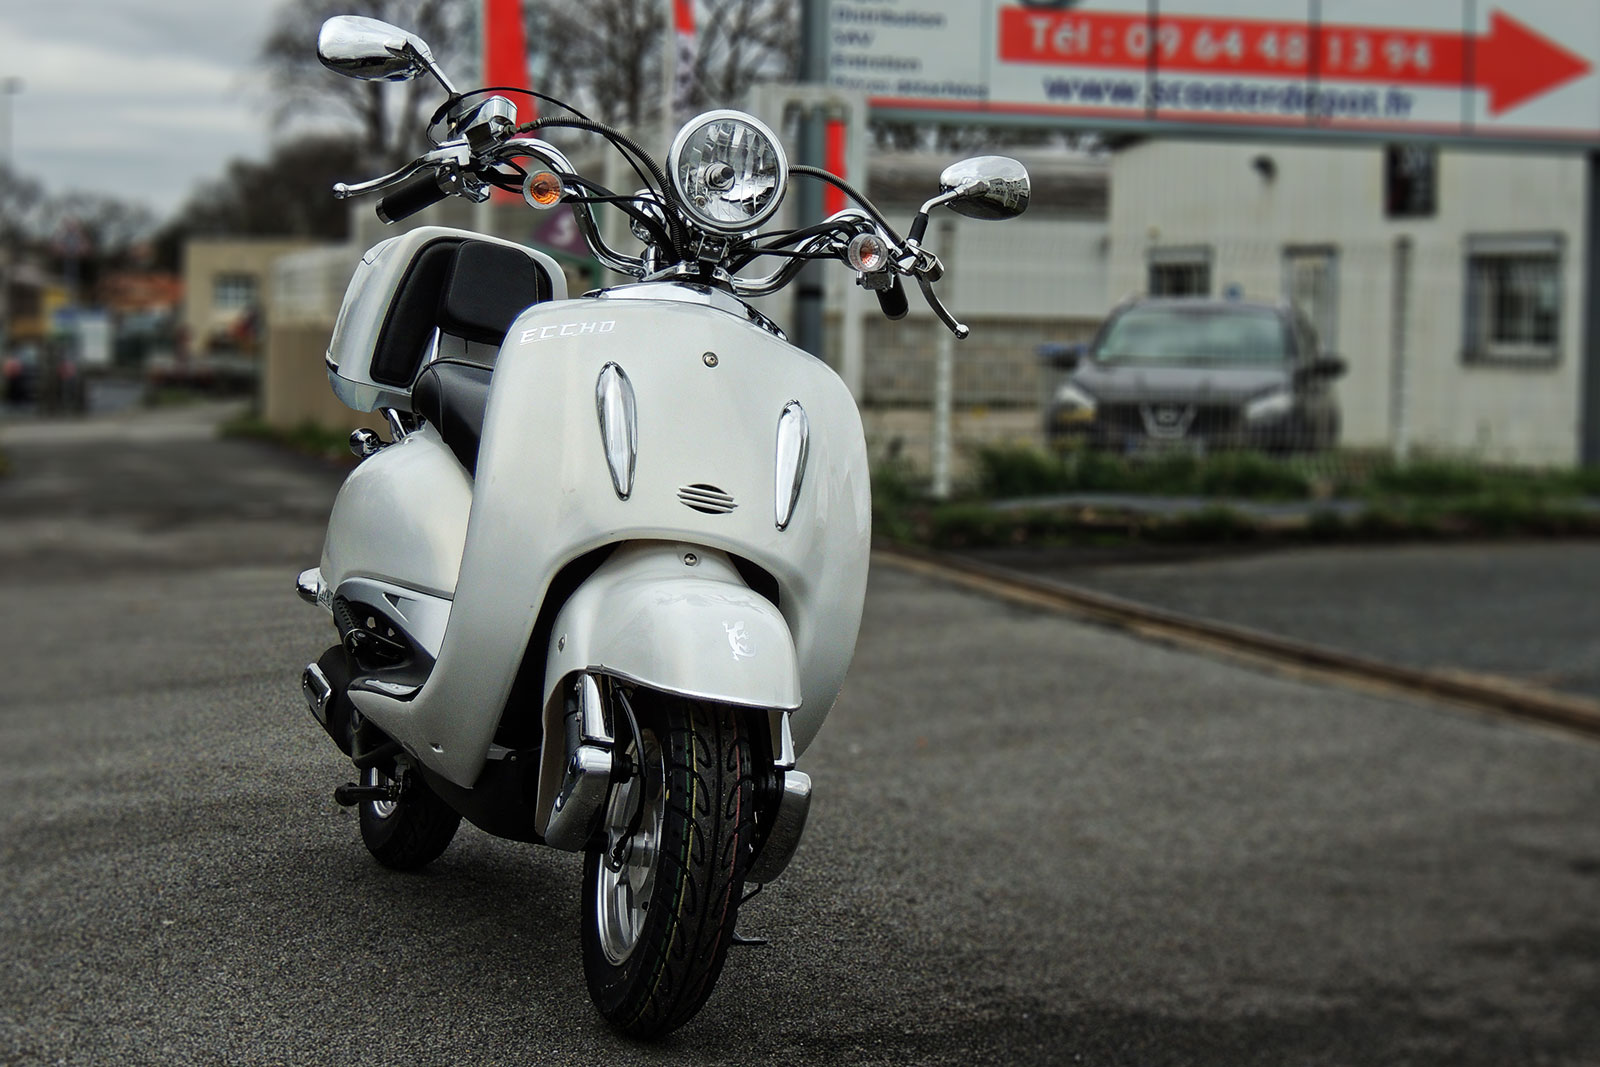 SCOOTER-125-ECCHO-CHOUPETTE-WHITE-SERIES-02